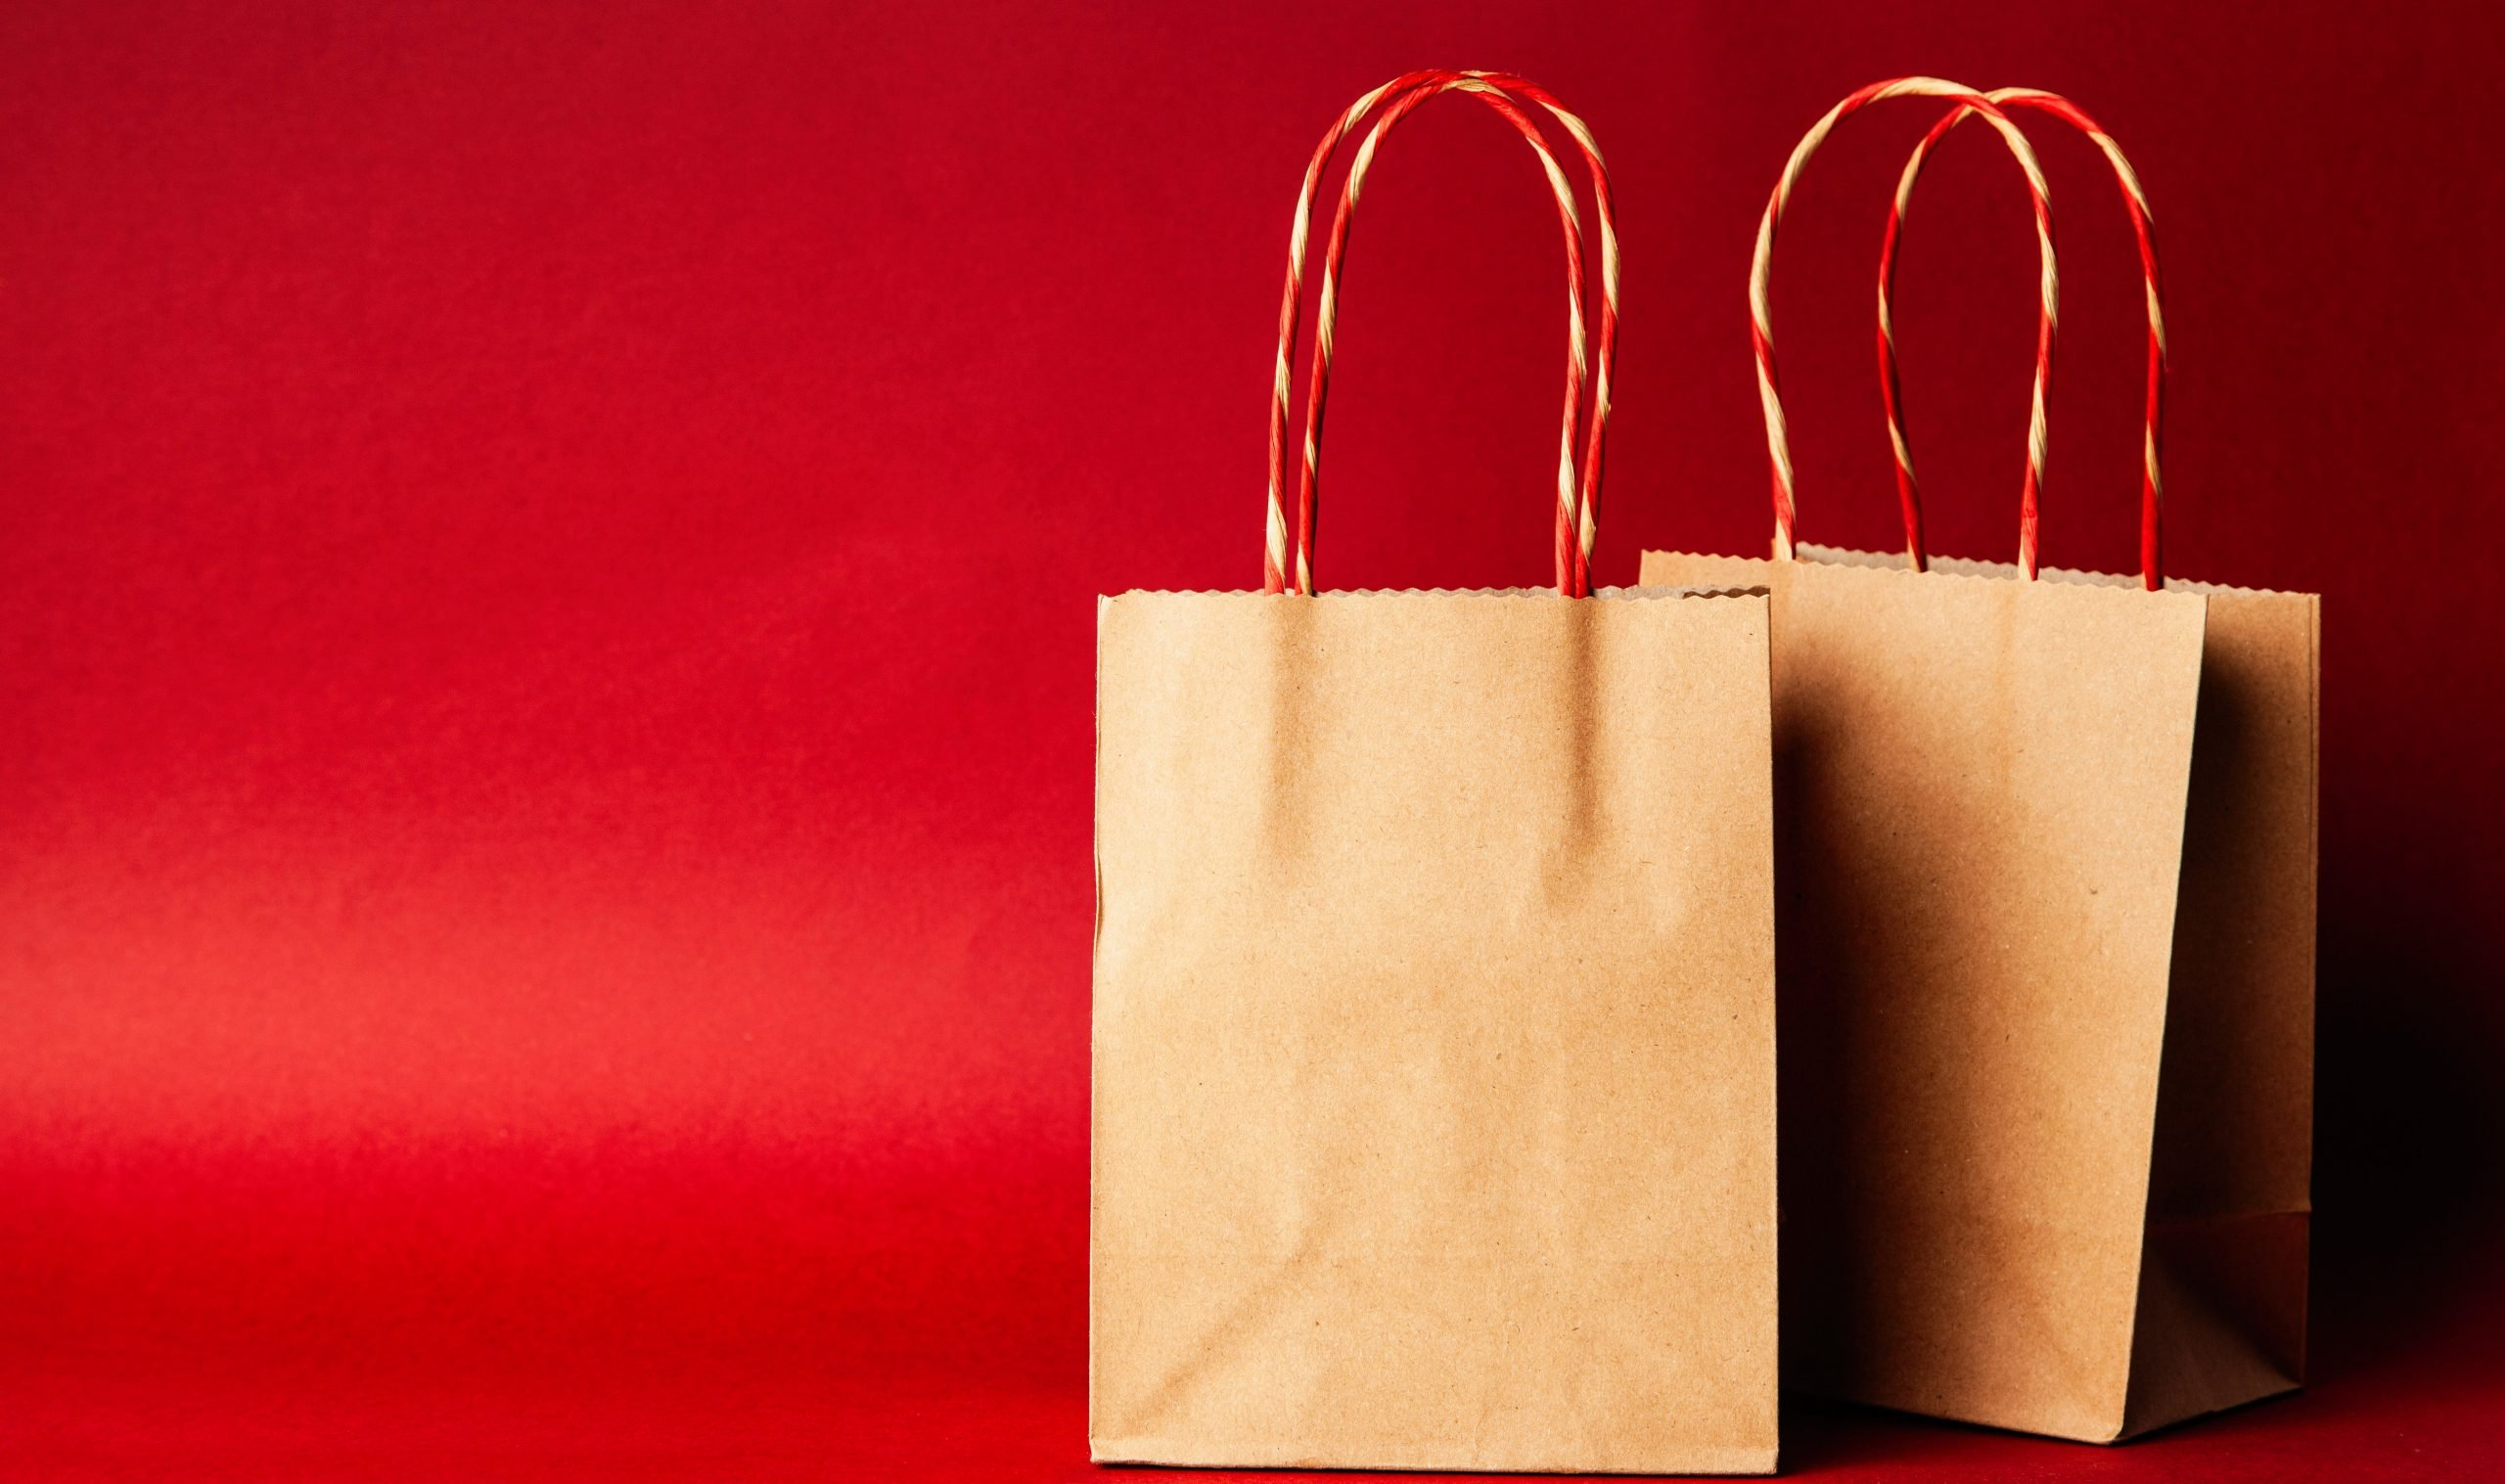 shopping bags on red background